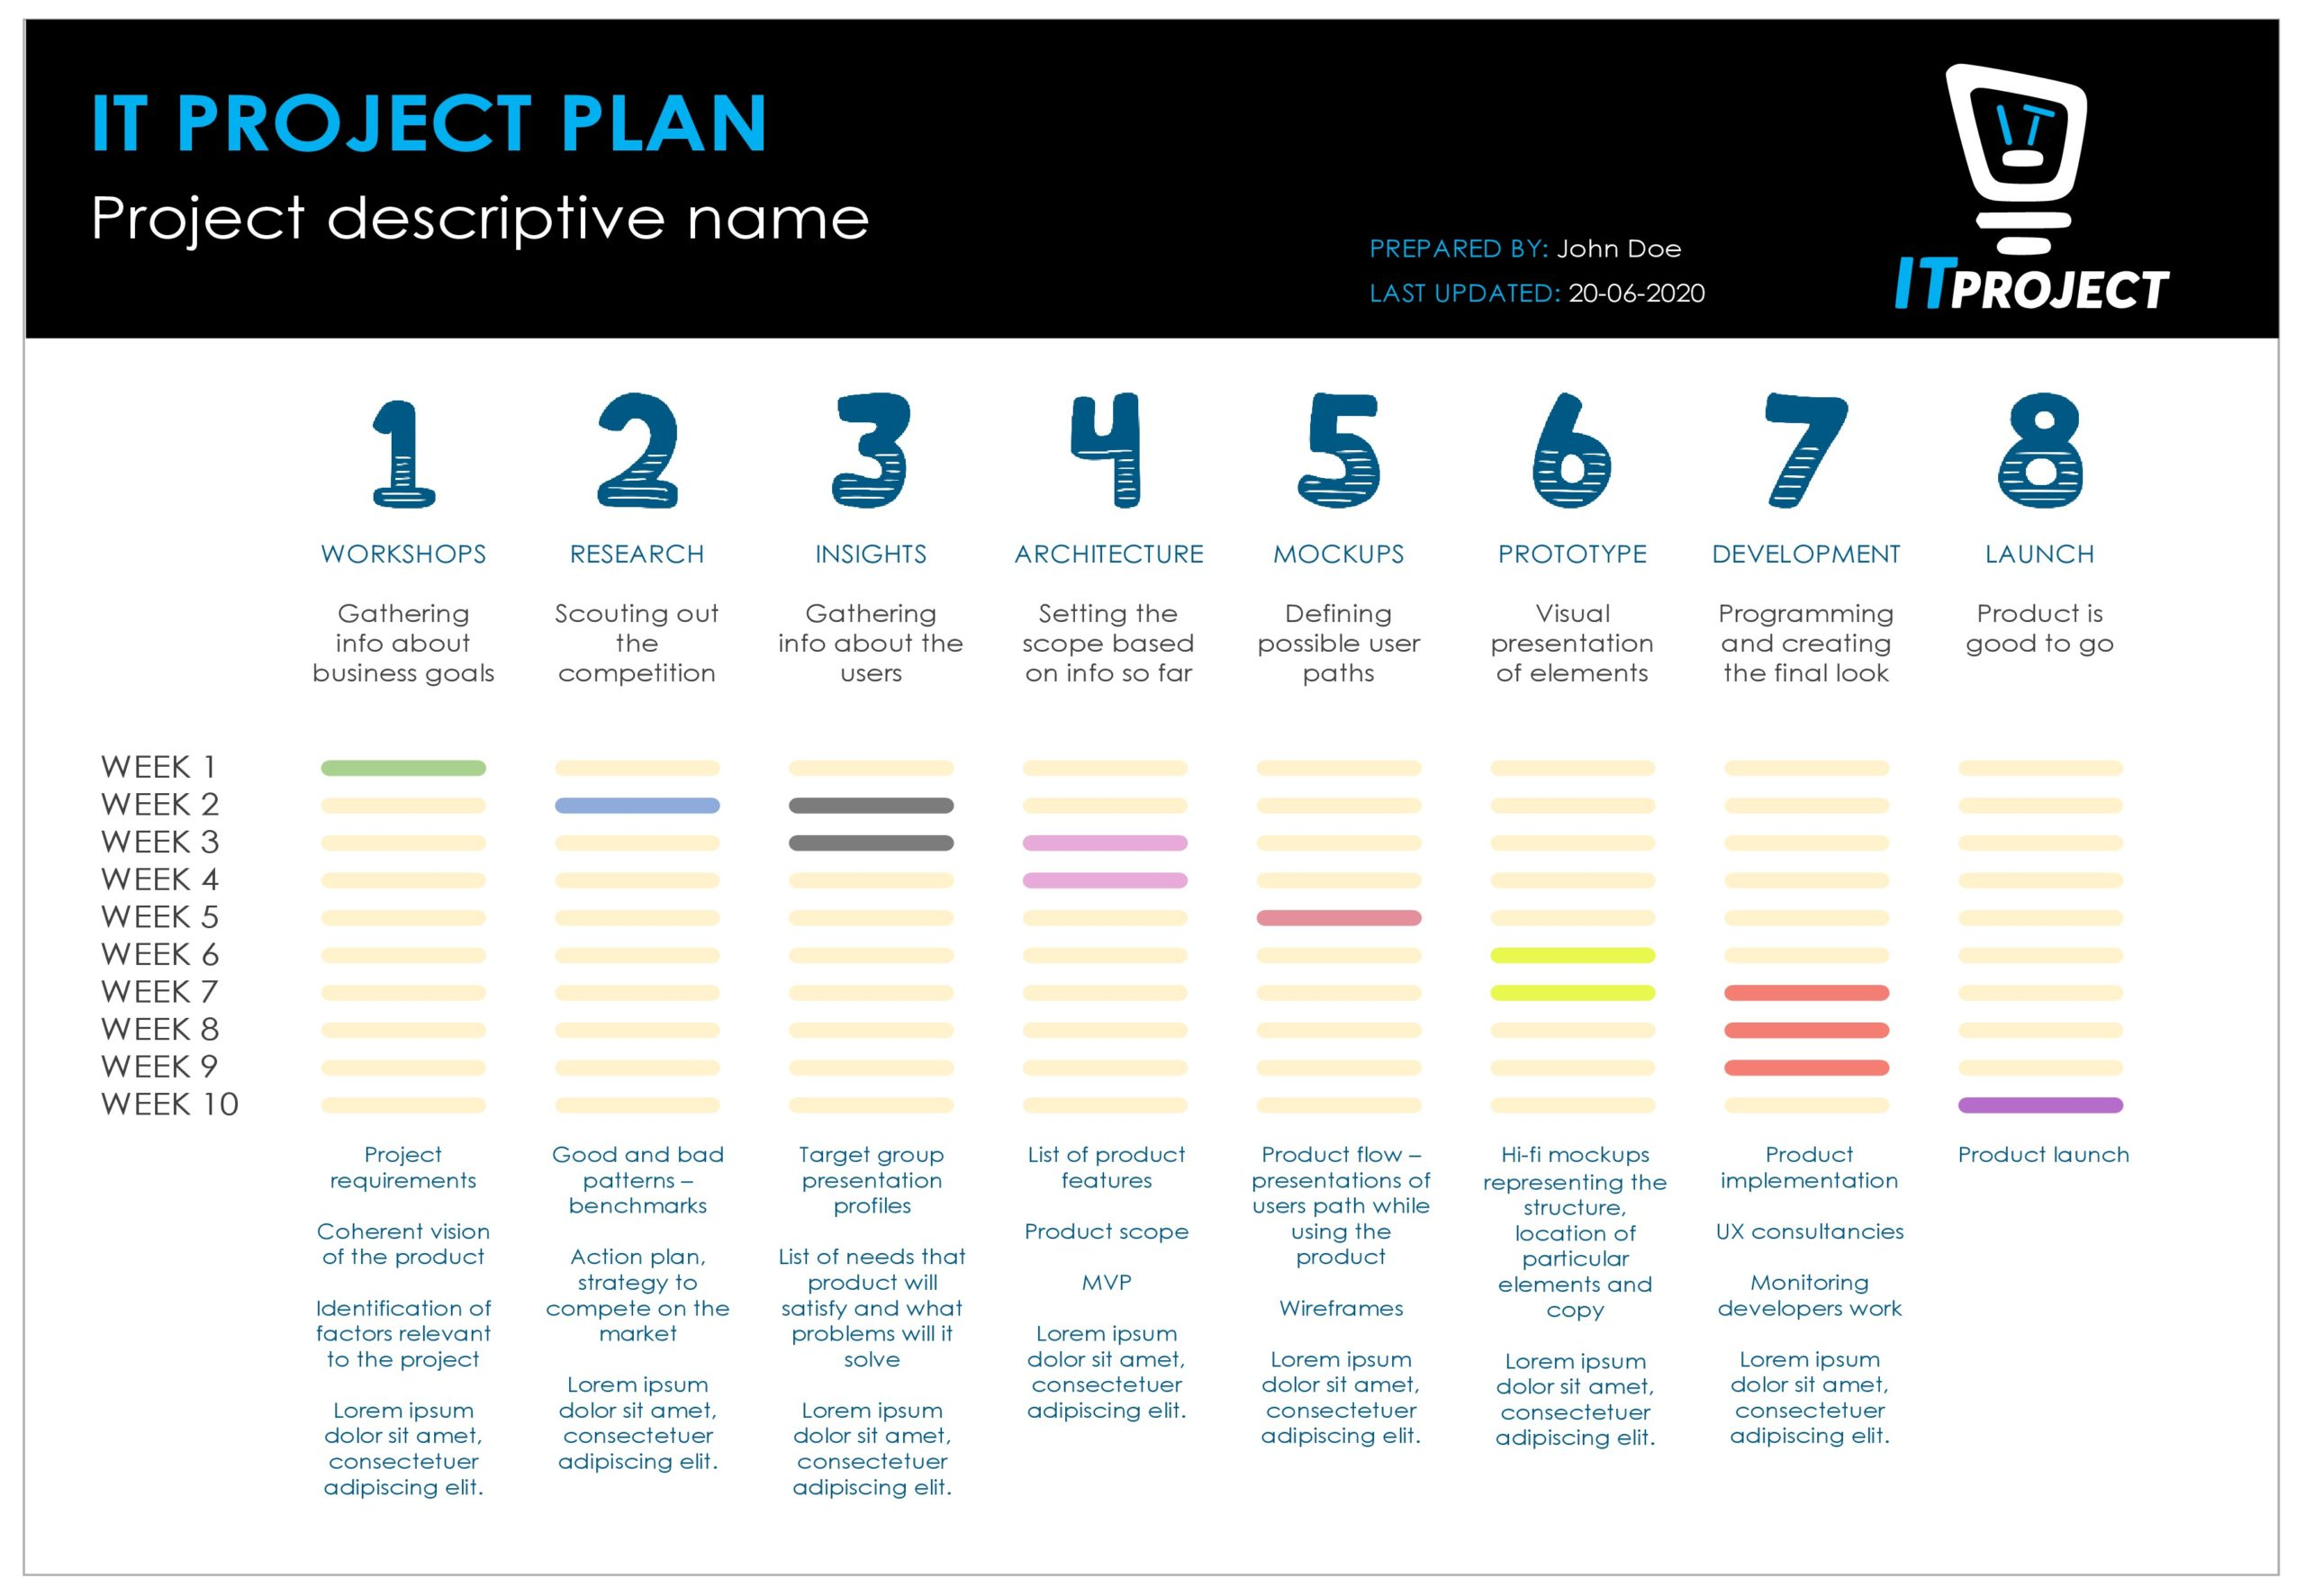 Free IT Project Plan Template - TemplateLab.com